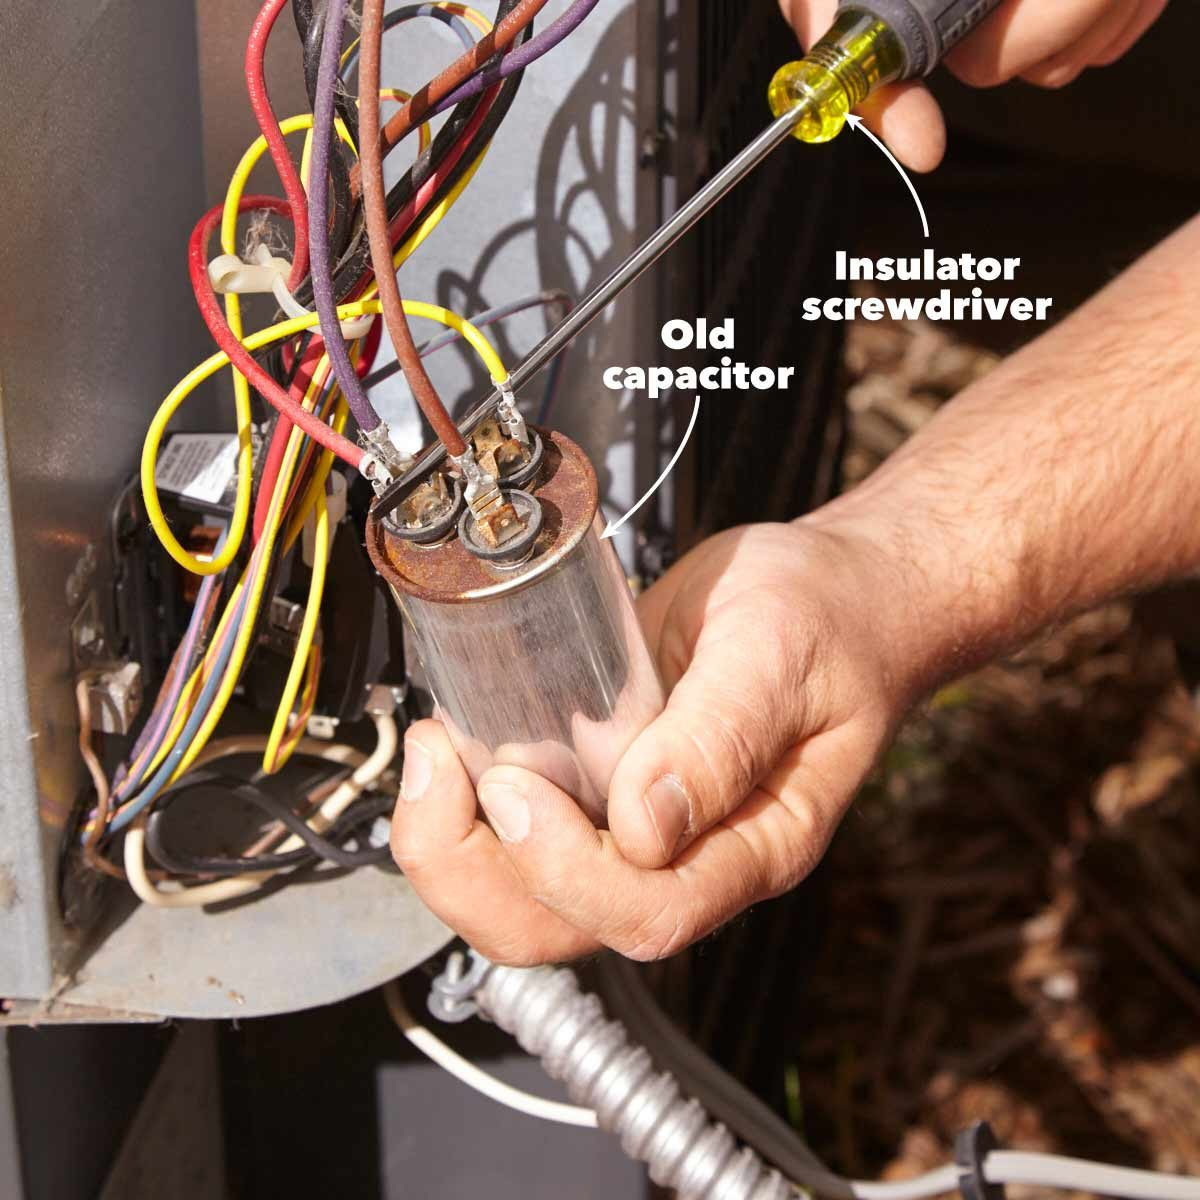 How to Troubleshoot & Fix an Air Conditioner (DIY w ... Intertherm Contactor Wiring Diagram on abortion diagram, kitchen stoves and ovens diagram, push button start stop diagram, contactor exploded view, contactor coil, reverse polarity relay diagram, generac transfer switch diagram, magnetic contactor diagram, logic flow diagram, contactor operation diagram, single phase reversing contactor diagram, carrier furnace parts diagram, mechanically held lighting contactor diagram, circuit diagram, contactor switch, electrical contactor diagram, 3 position selector switch diagram, contactor parts, contactor relay, 6 prong toggle switch diagram,